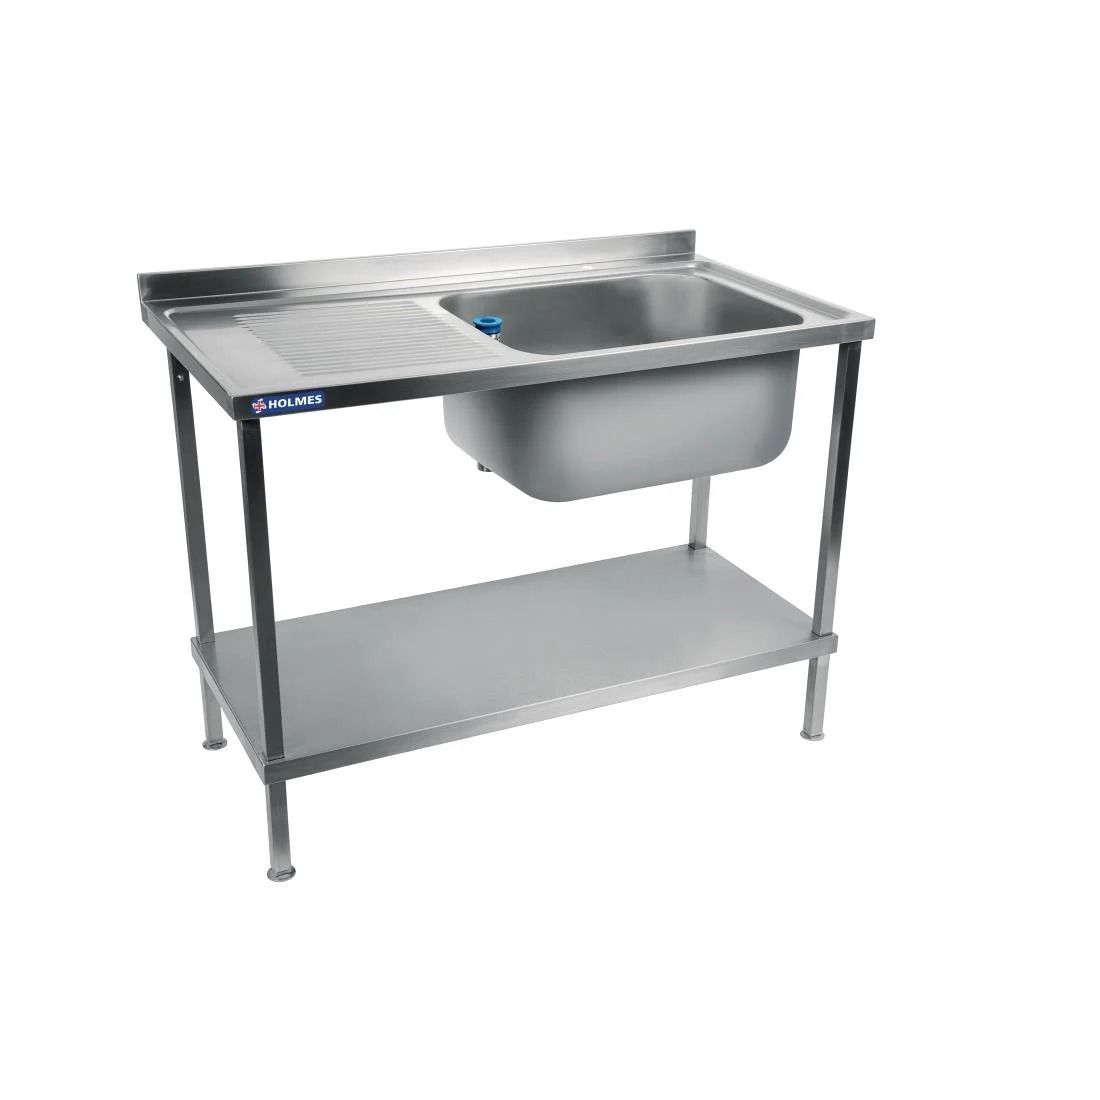 Holmes Self Assembly Stainless Steel Sink Left Hand Drainer 1500mm - DR369